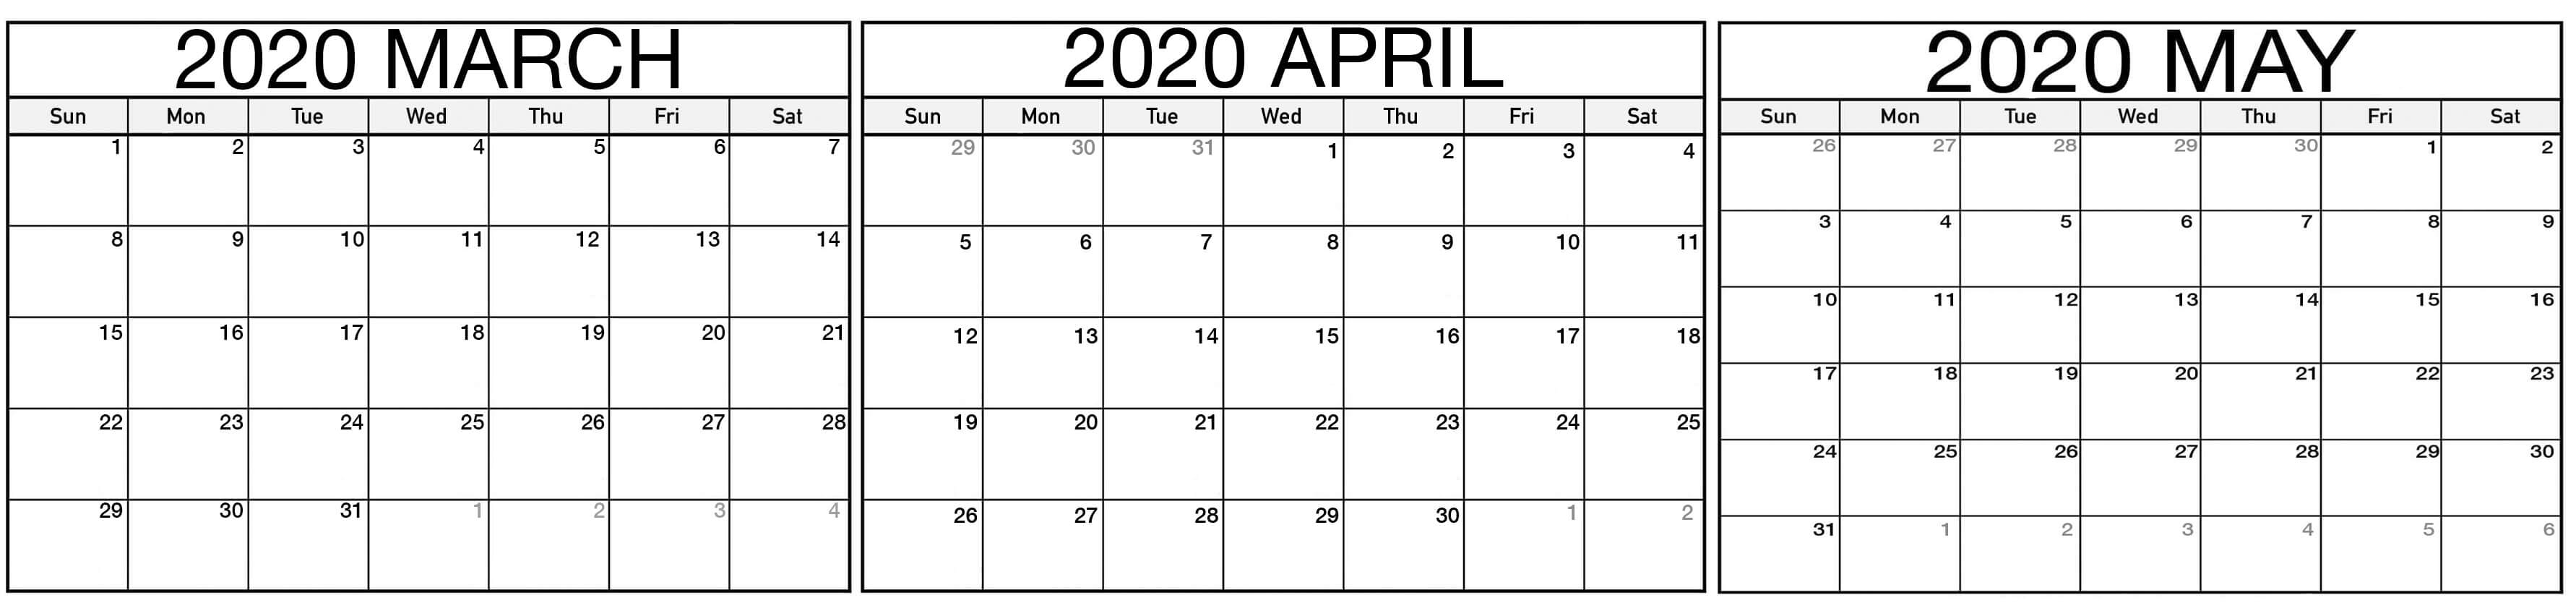 Blank March To May 2020 Calendar For Planning - Set Your